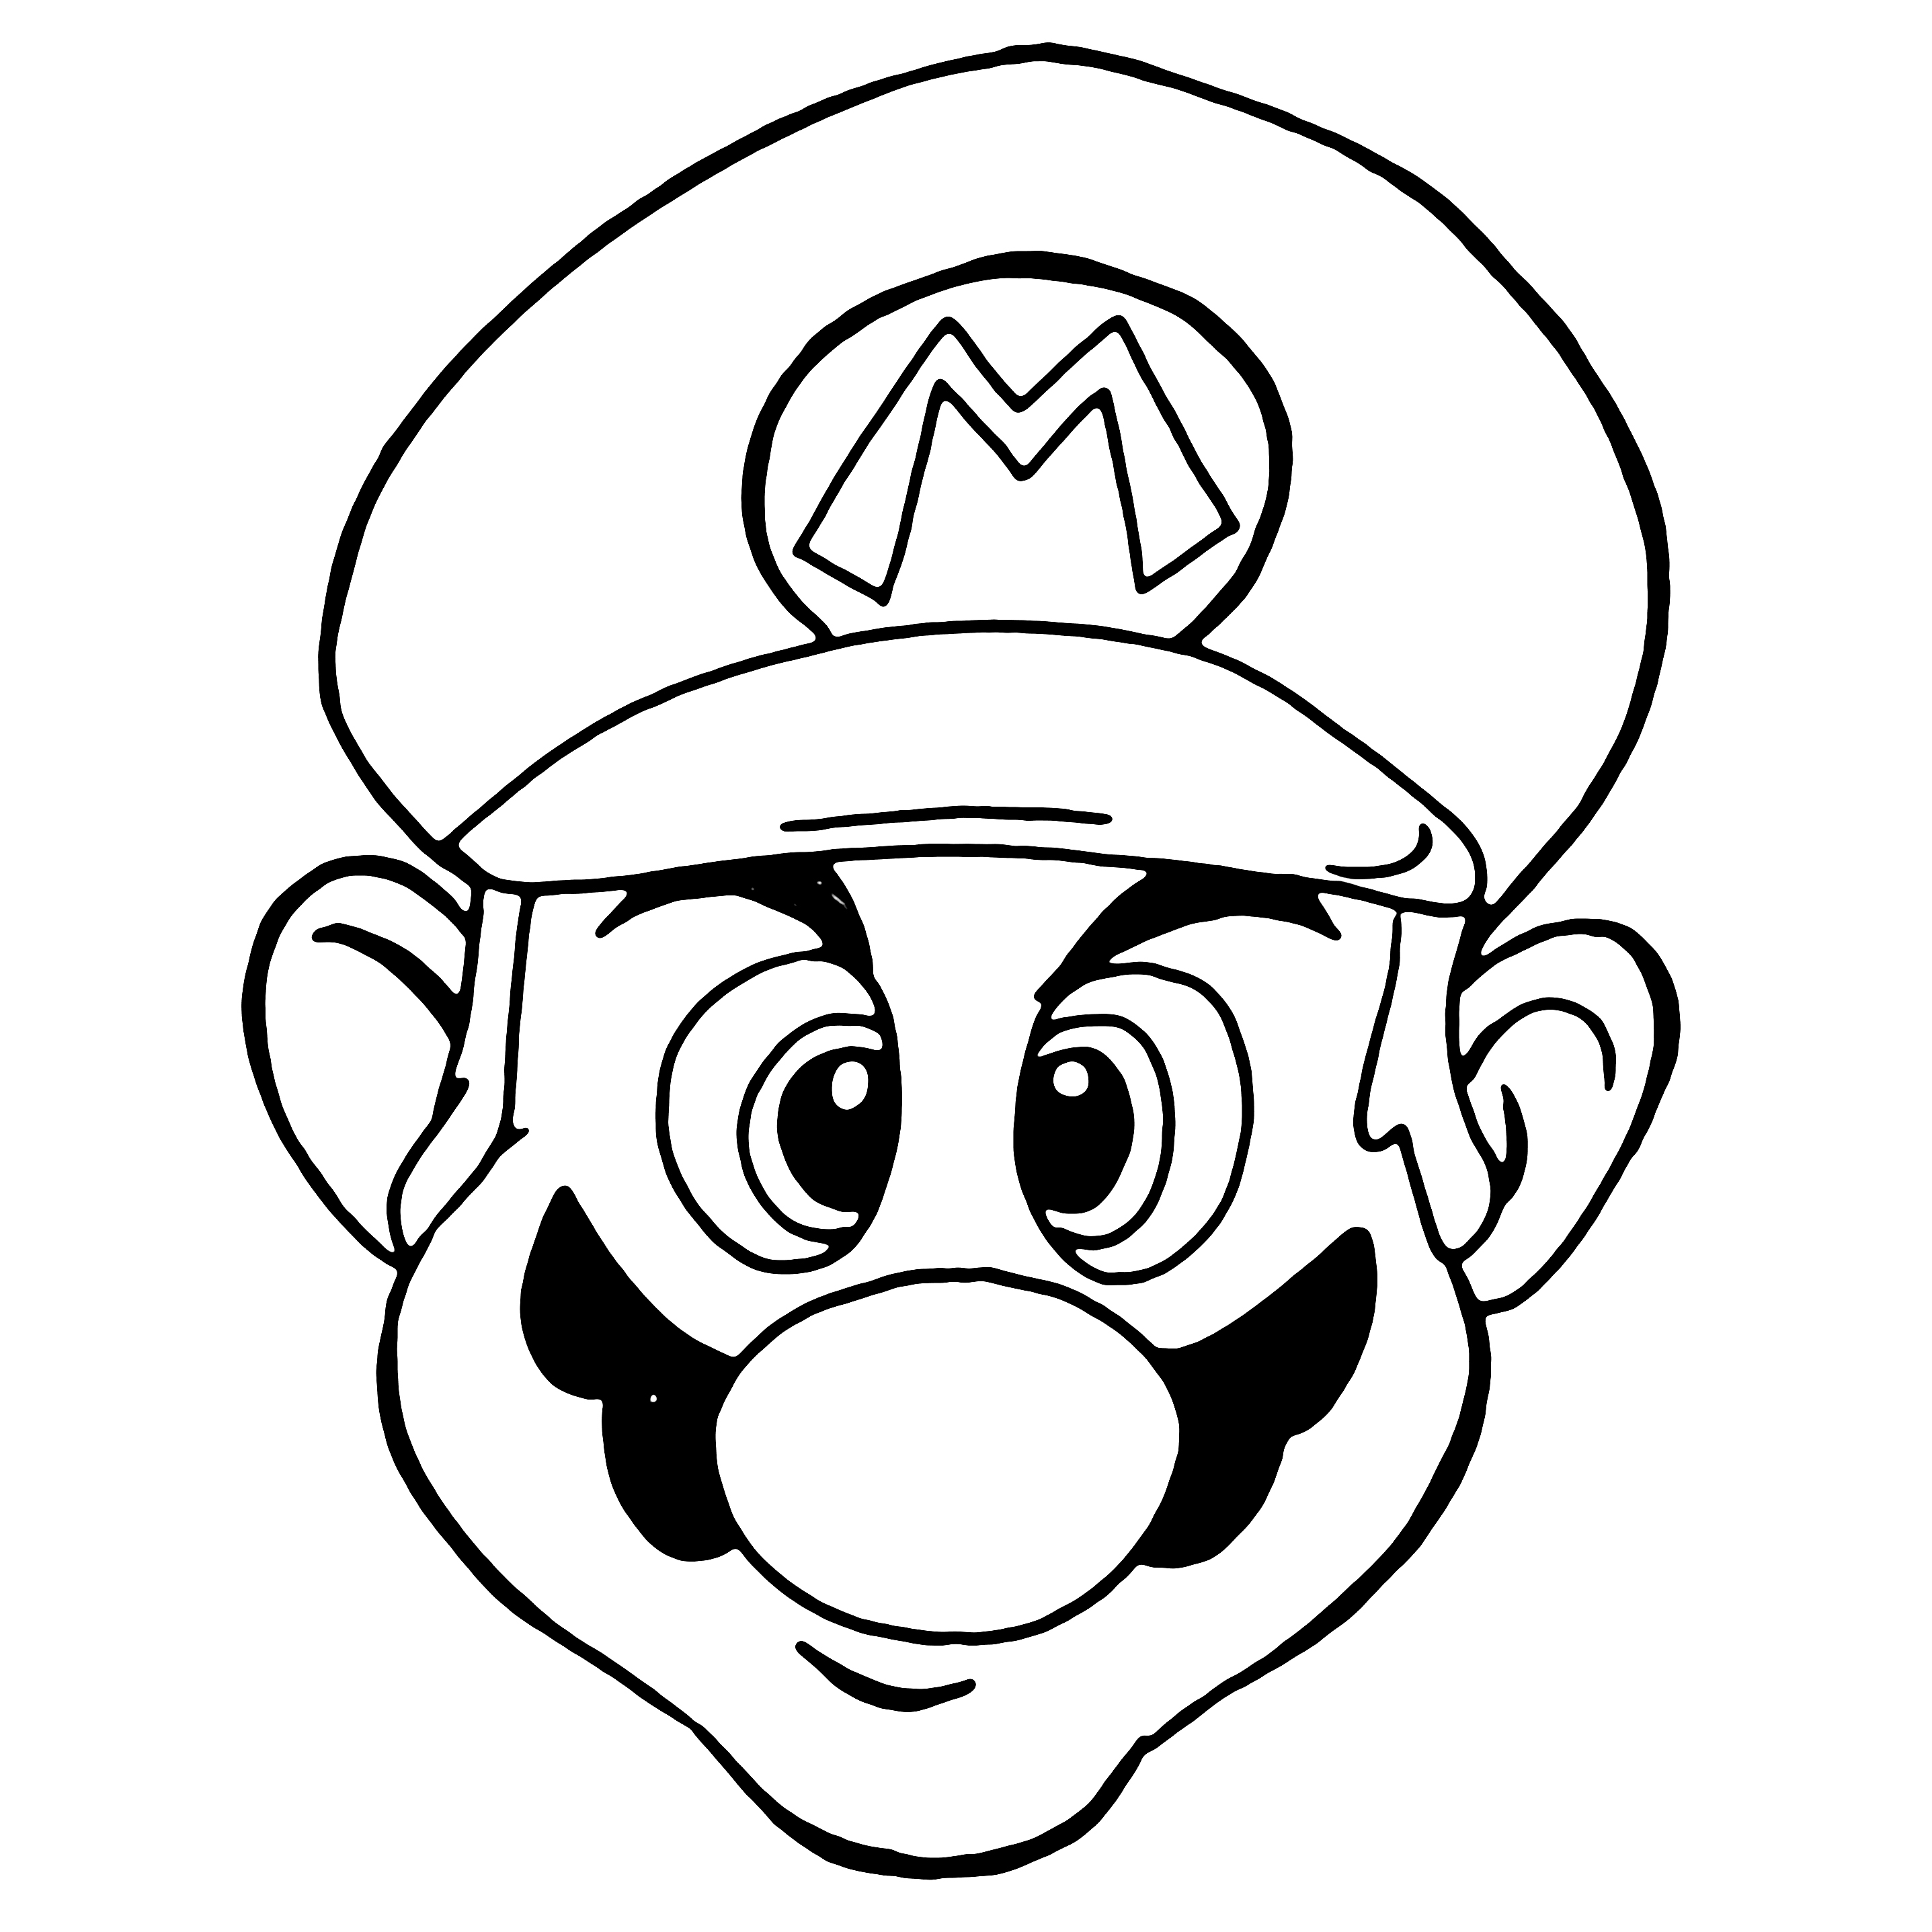 mario line drawing clipart best